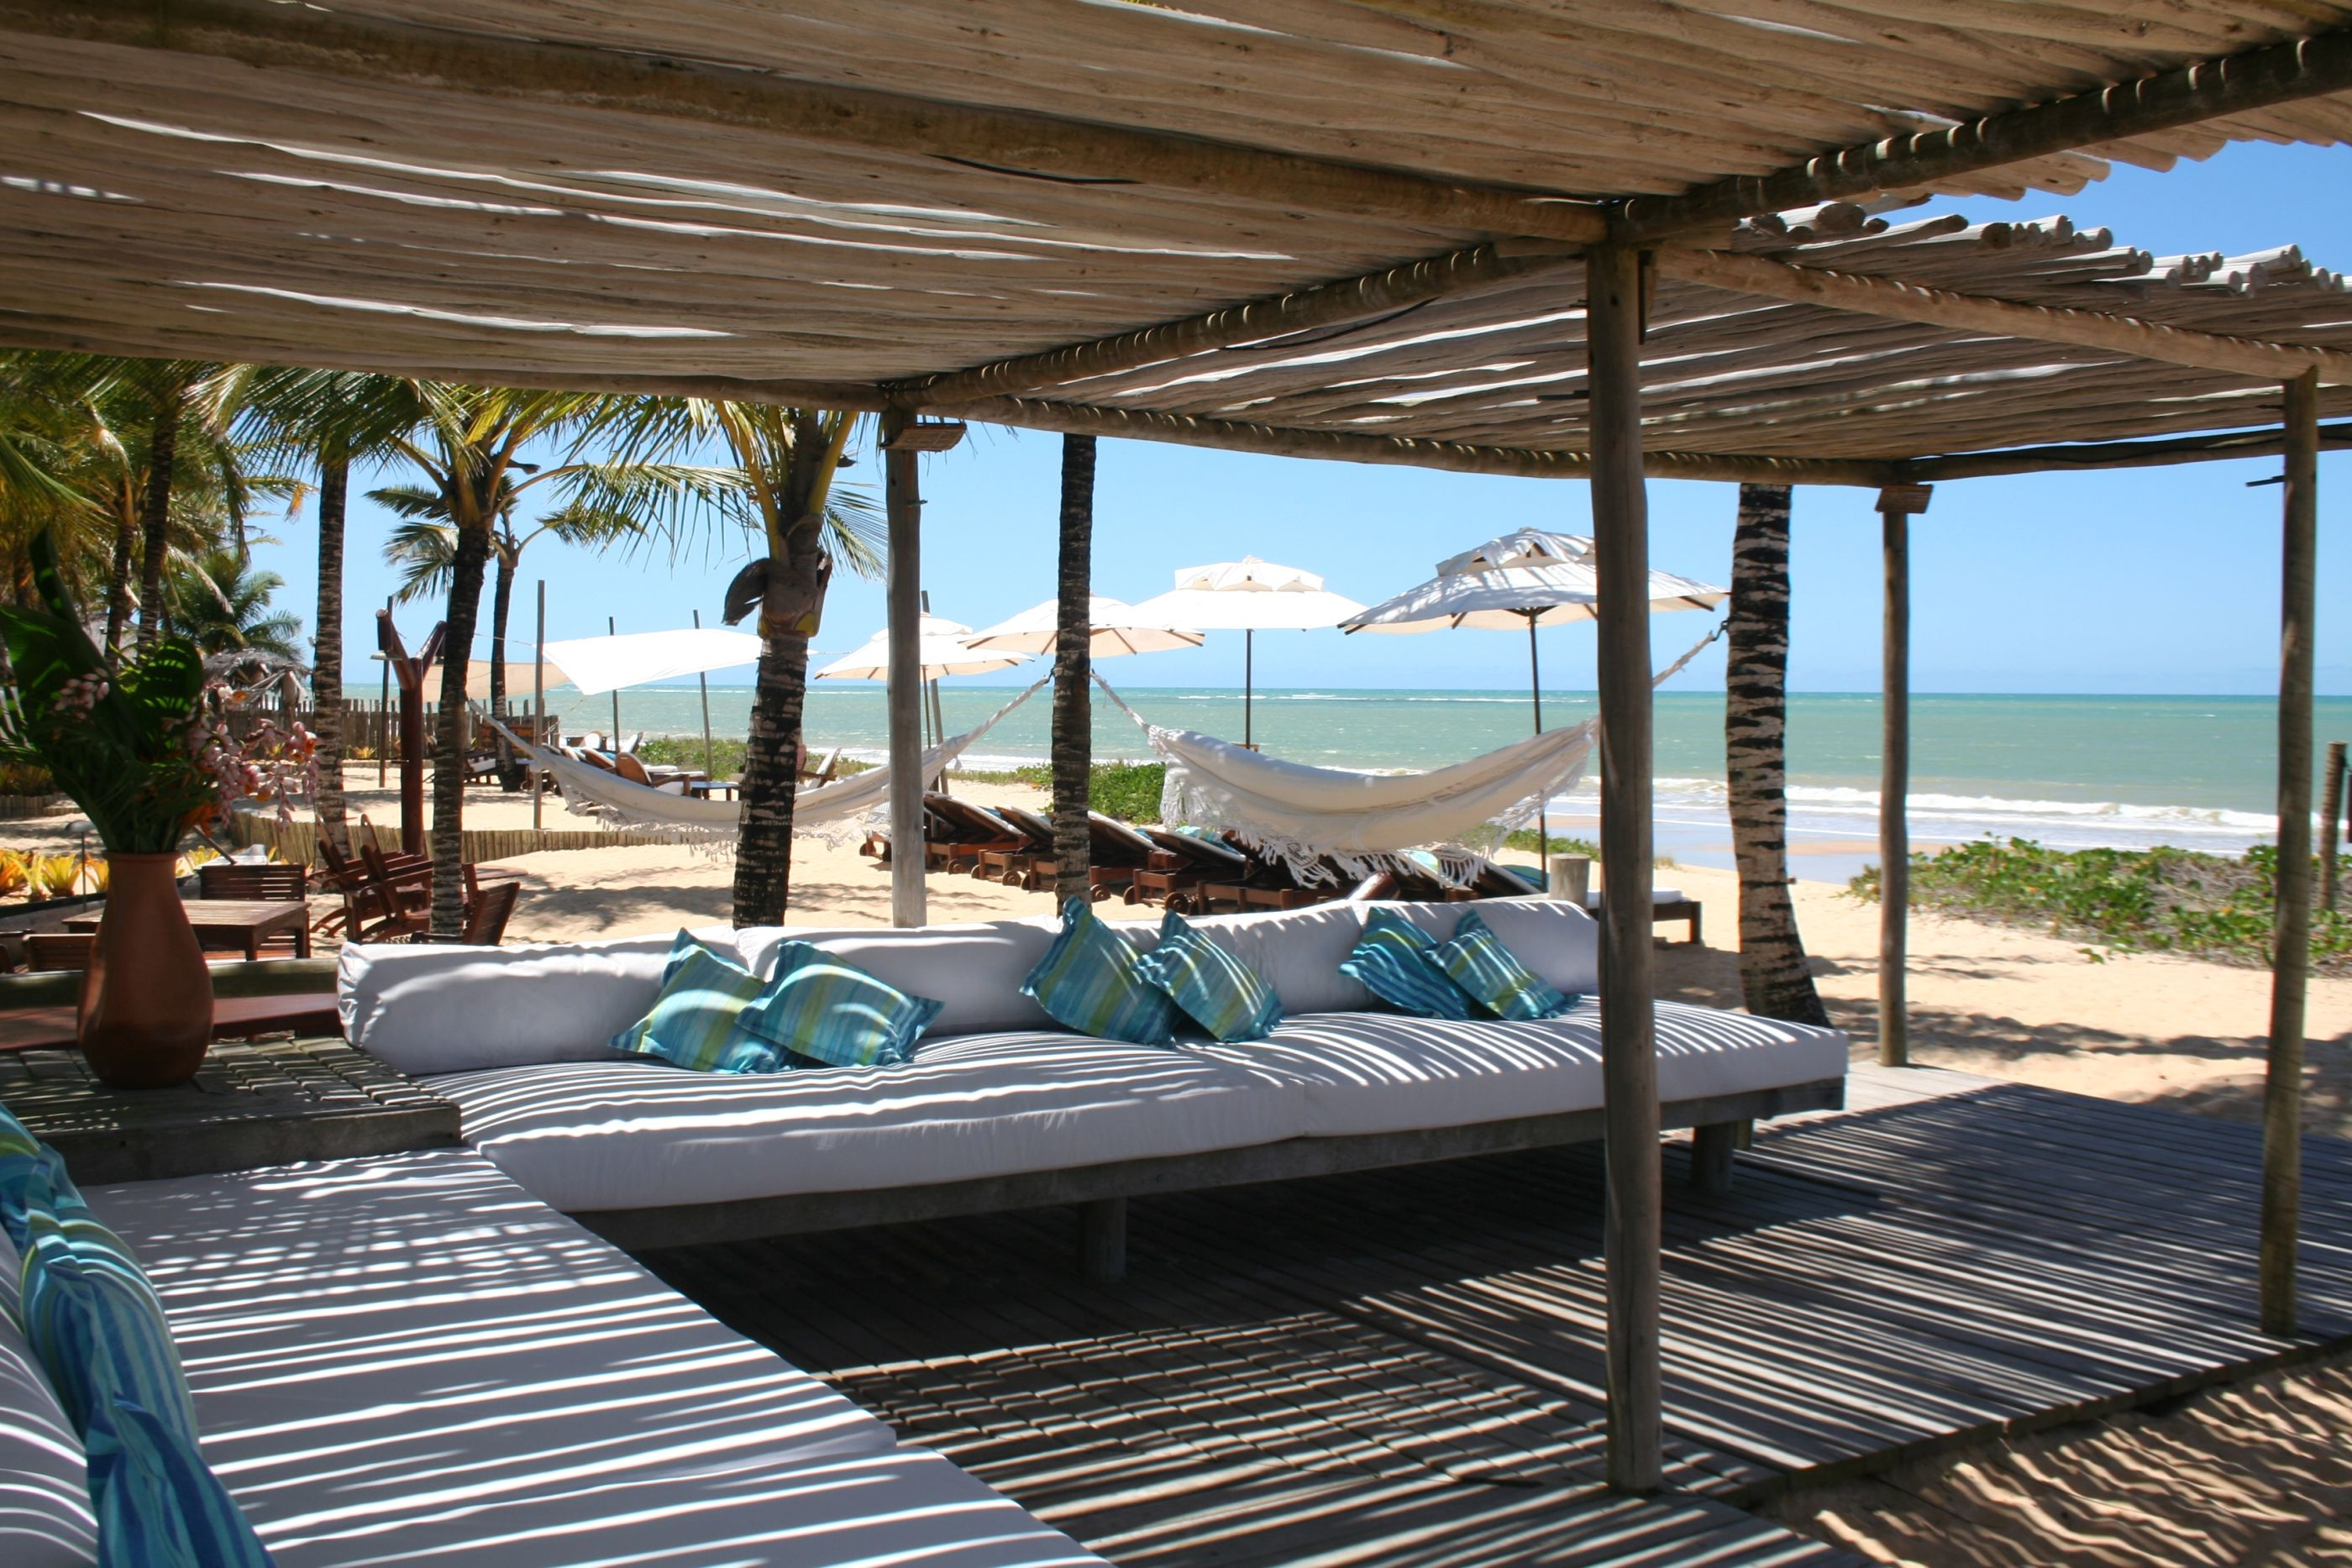 Villas de Trancoso  Bahia Brazil  South American Escapes